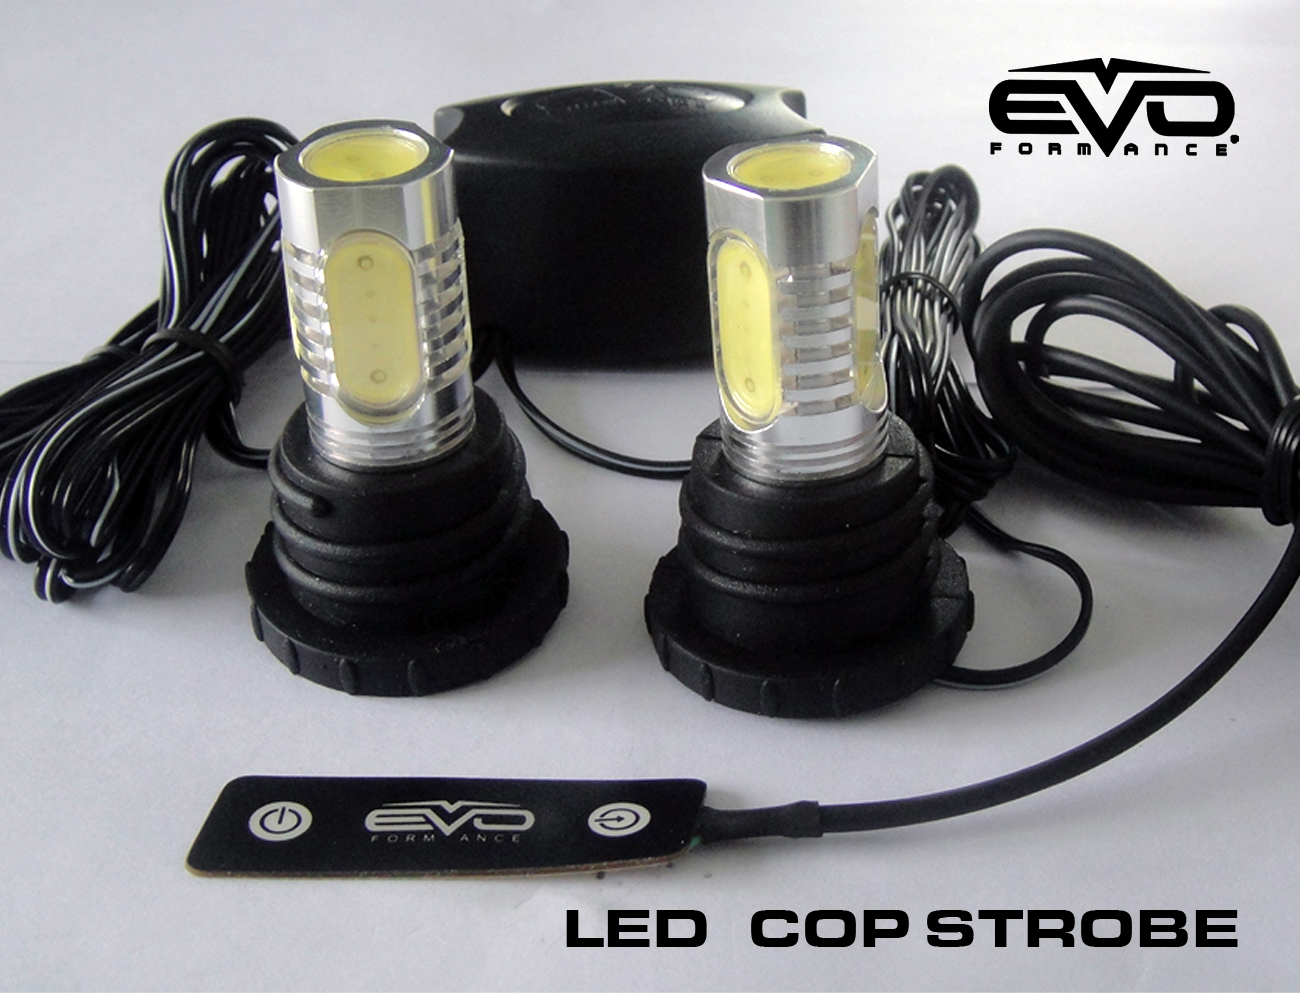 Evo Formance Universal Led Cop Strobe Light Headlight Kit